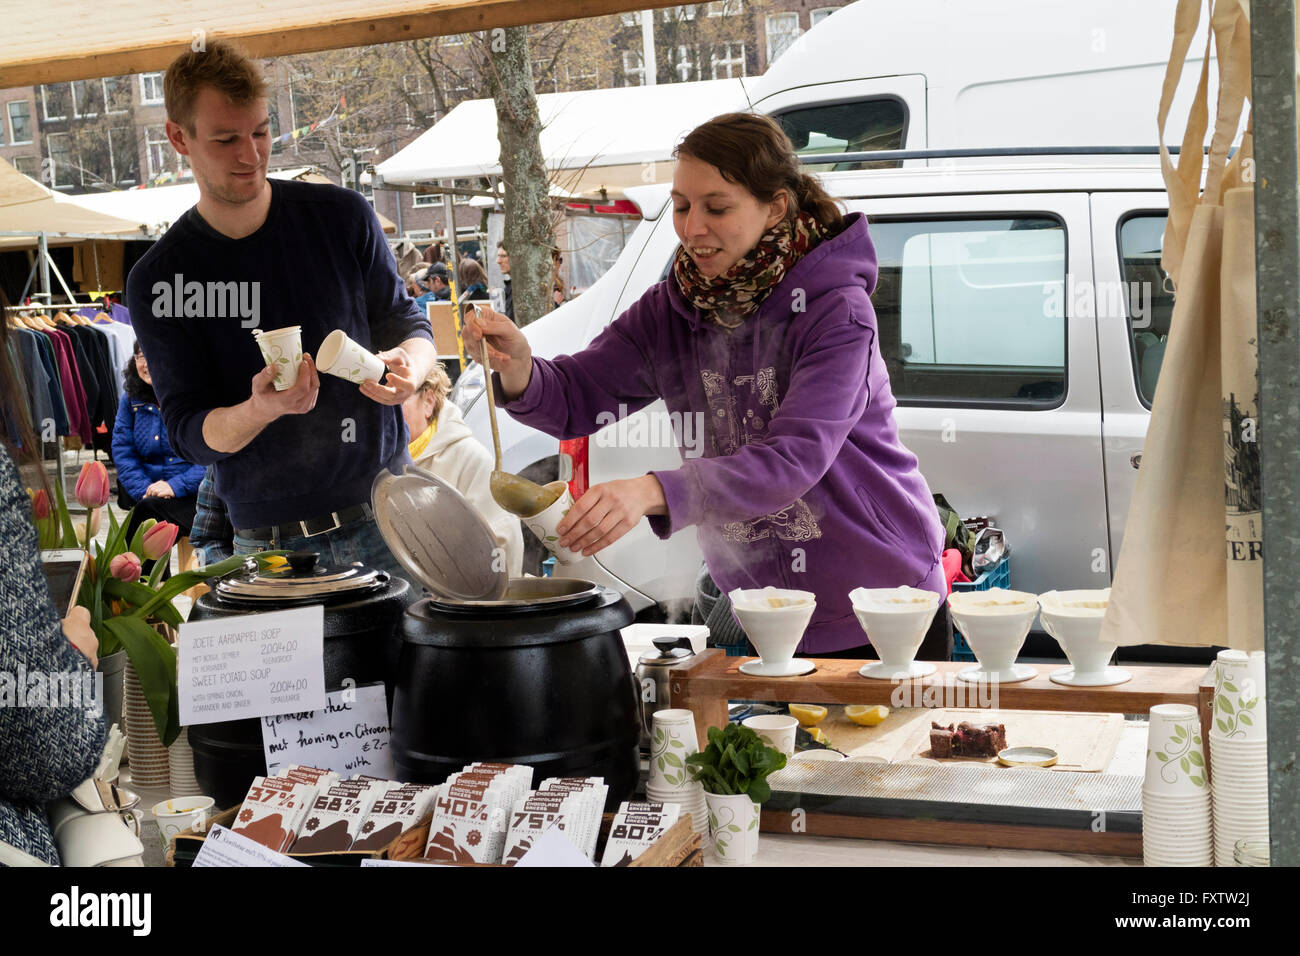 Selling homemade soup at the market in Amsterdam, Holland - Stock Image